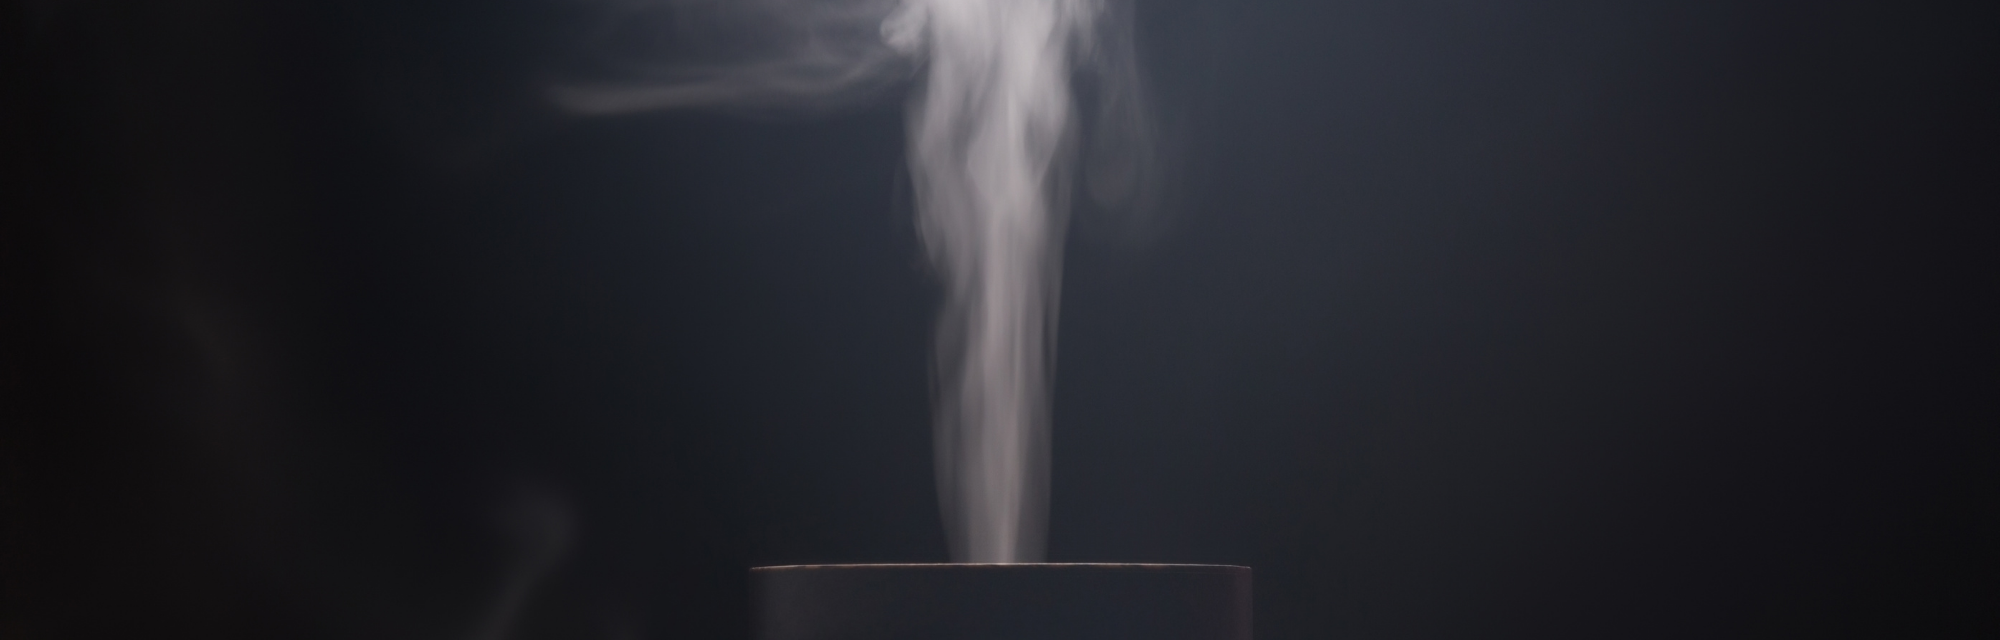 Vapor from an essential oil diffuser wafts into a dark, open room